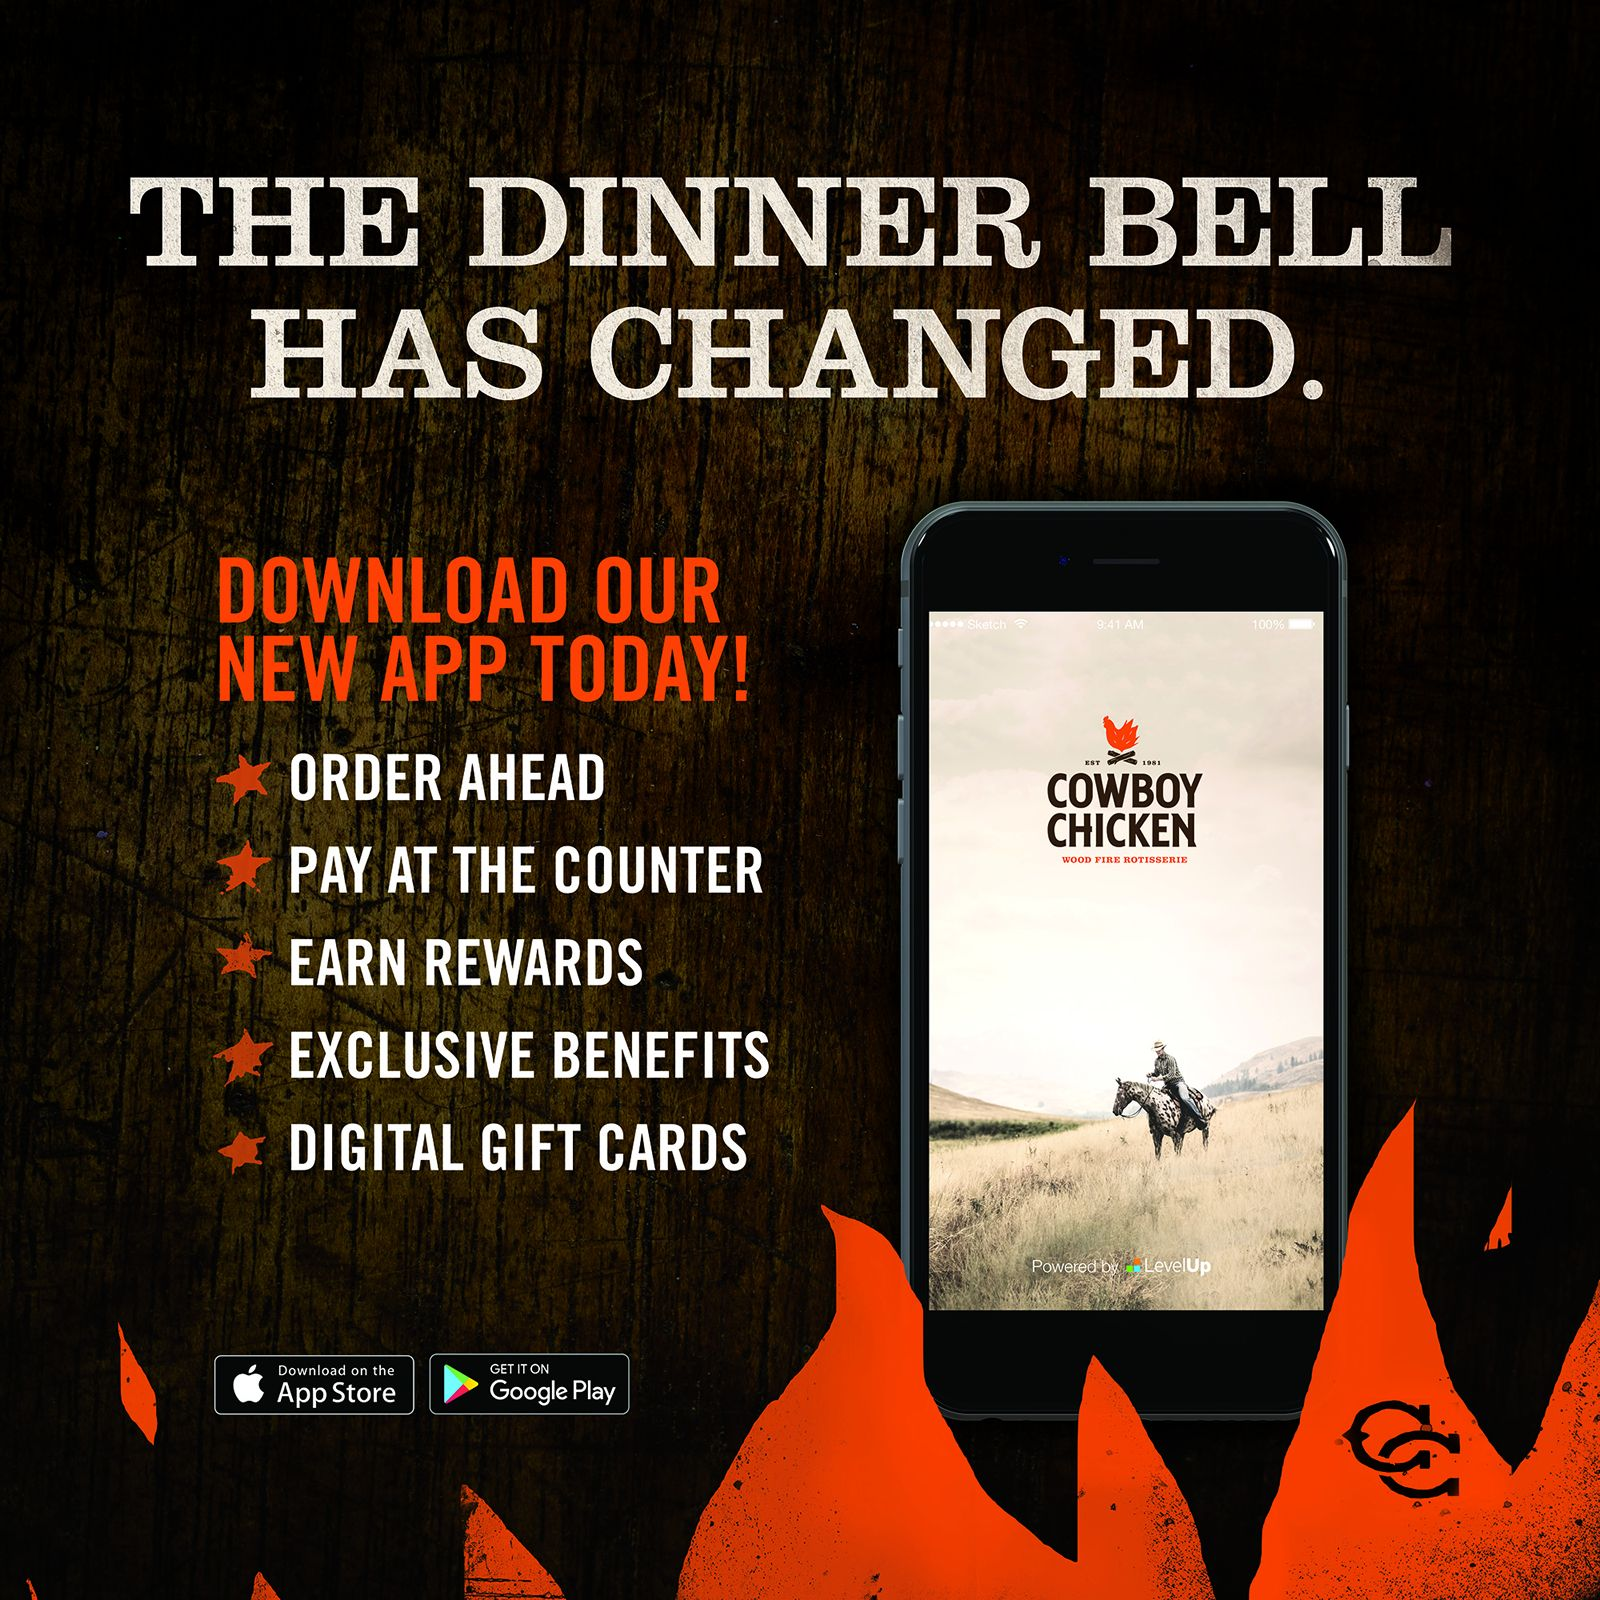 Cowboy Chicken Updates Mobile App to Put More Control in Guests' Hands with Cleaner Navigation and Increased Flexibility